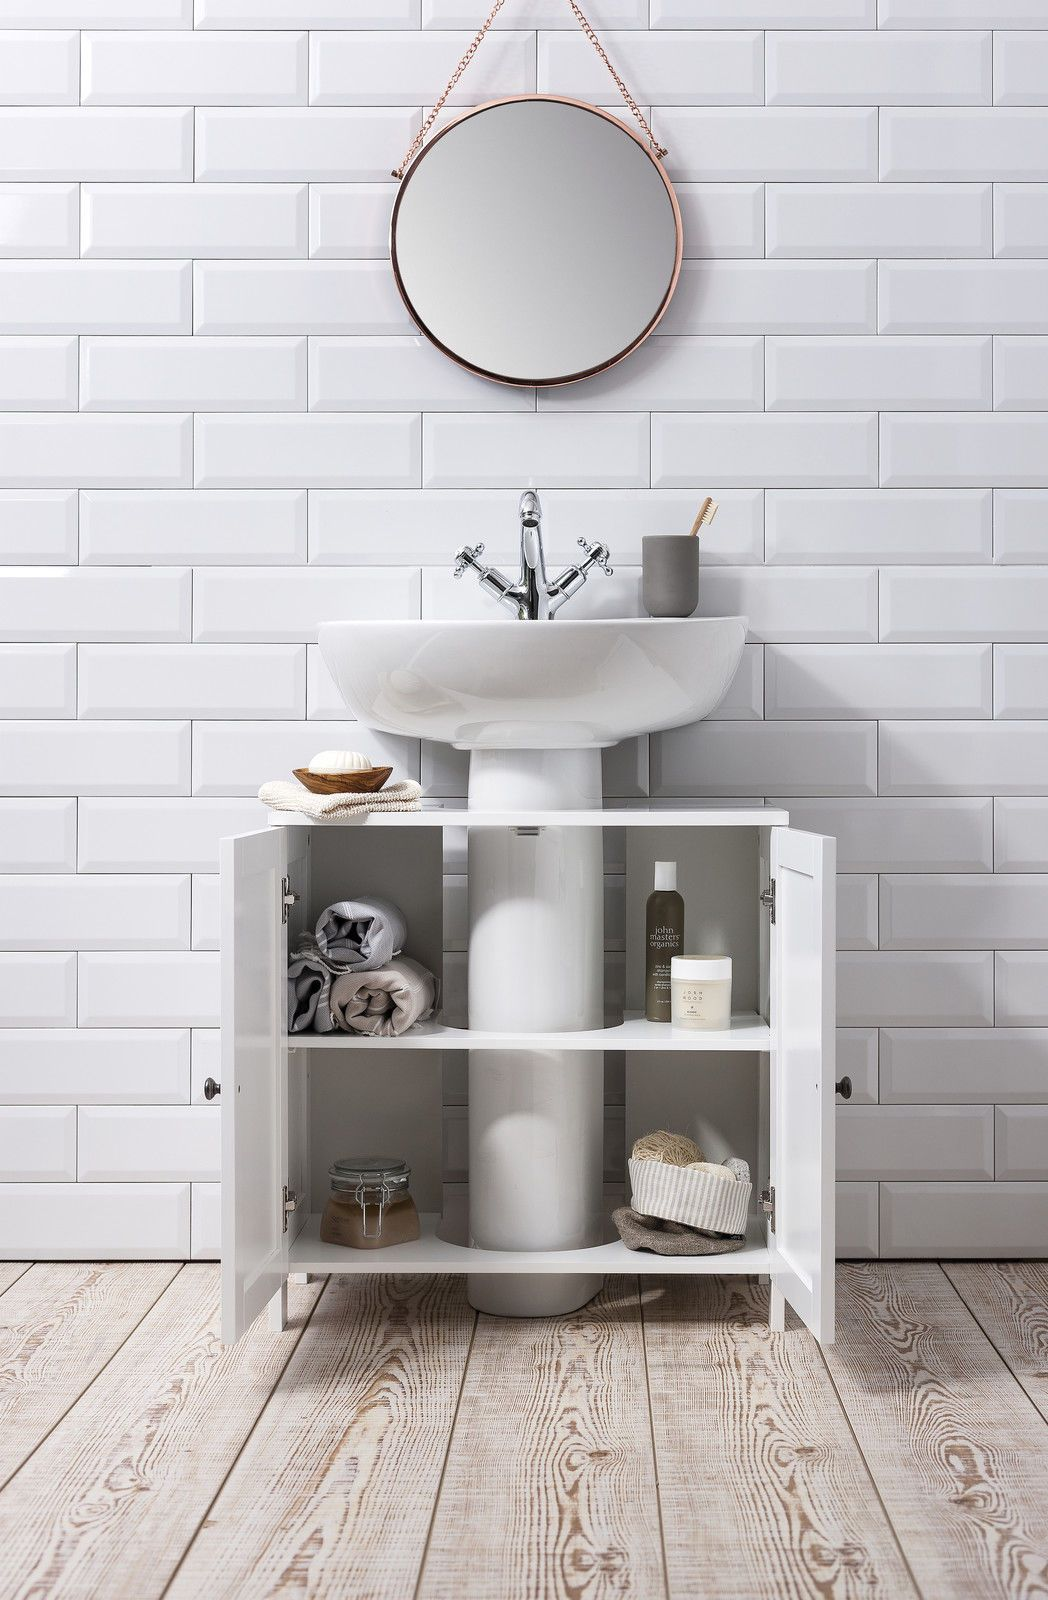 Bathroom Sink Cabinet Undersink in White Stow | storage | Pinterest ...